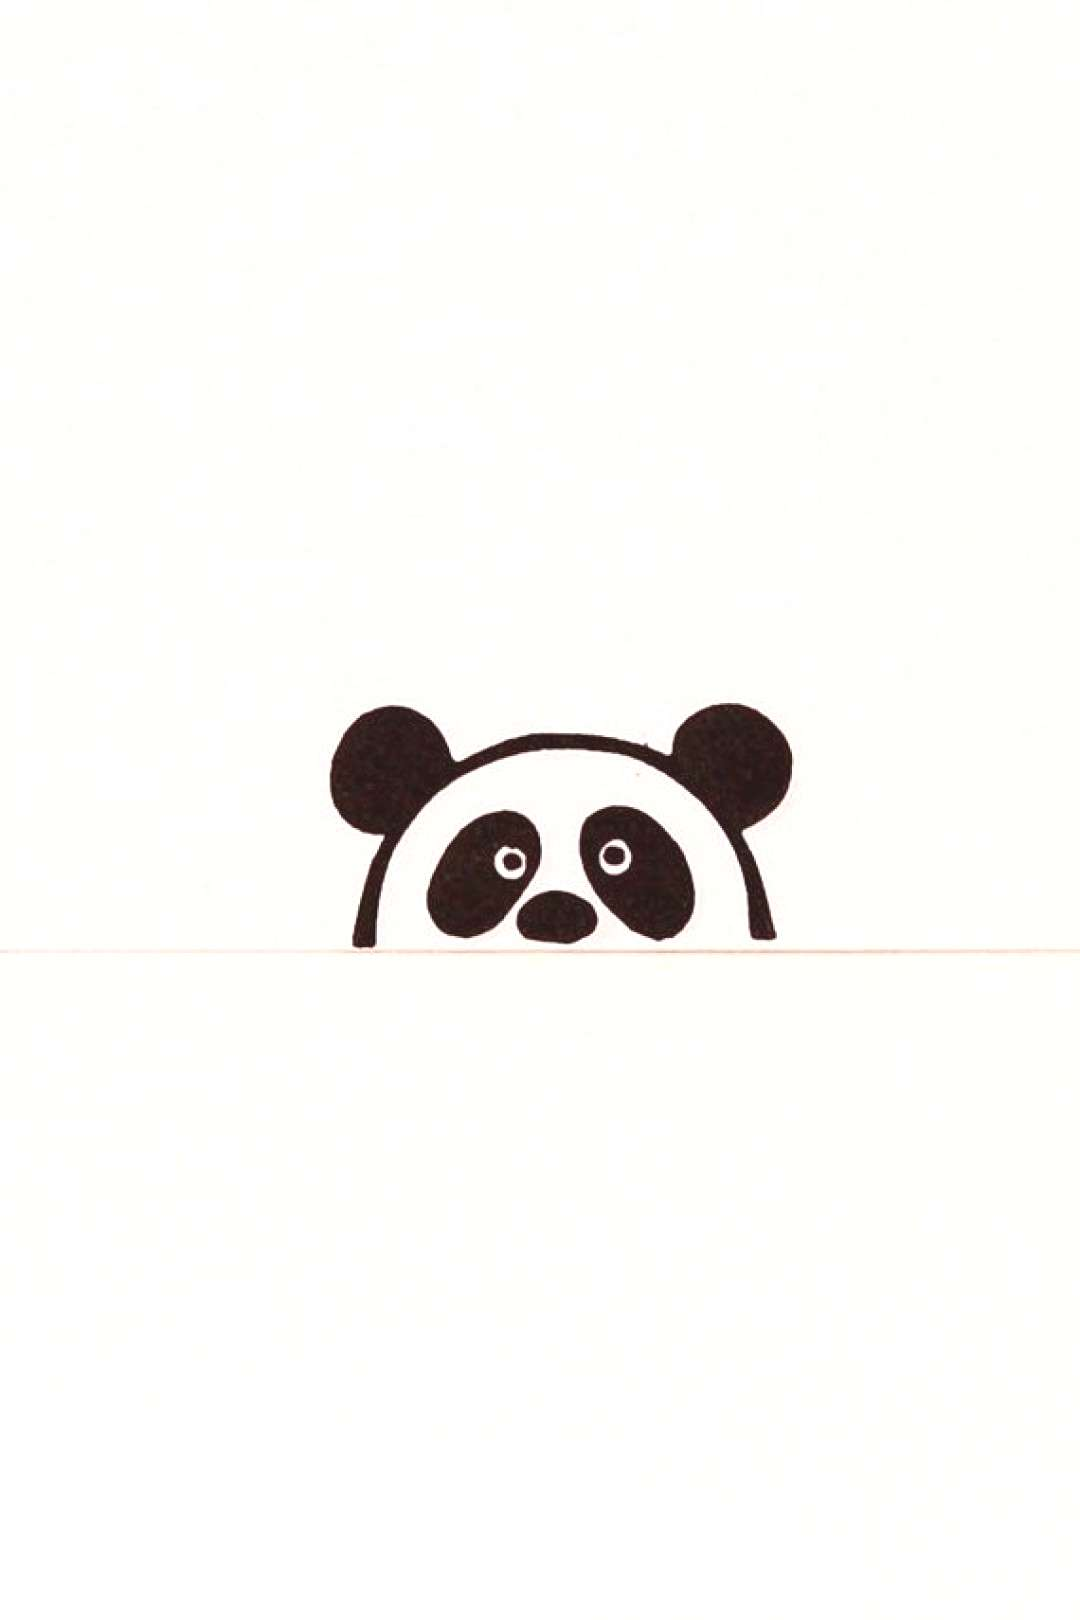 A small rubber stamp of a primitive simple peek-a-boo panda bear who looks at you a little bit susp